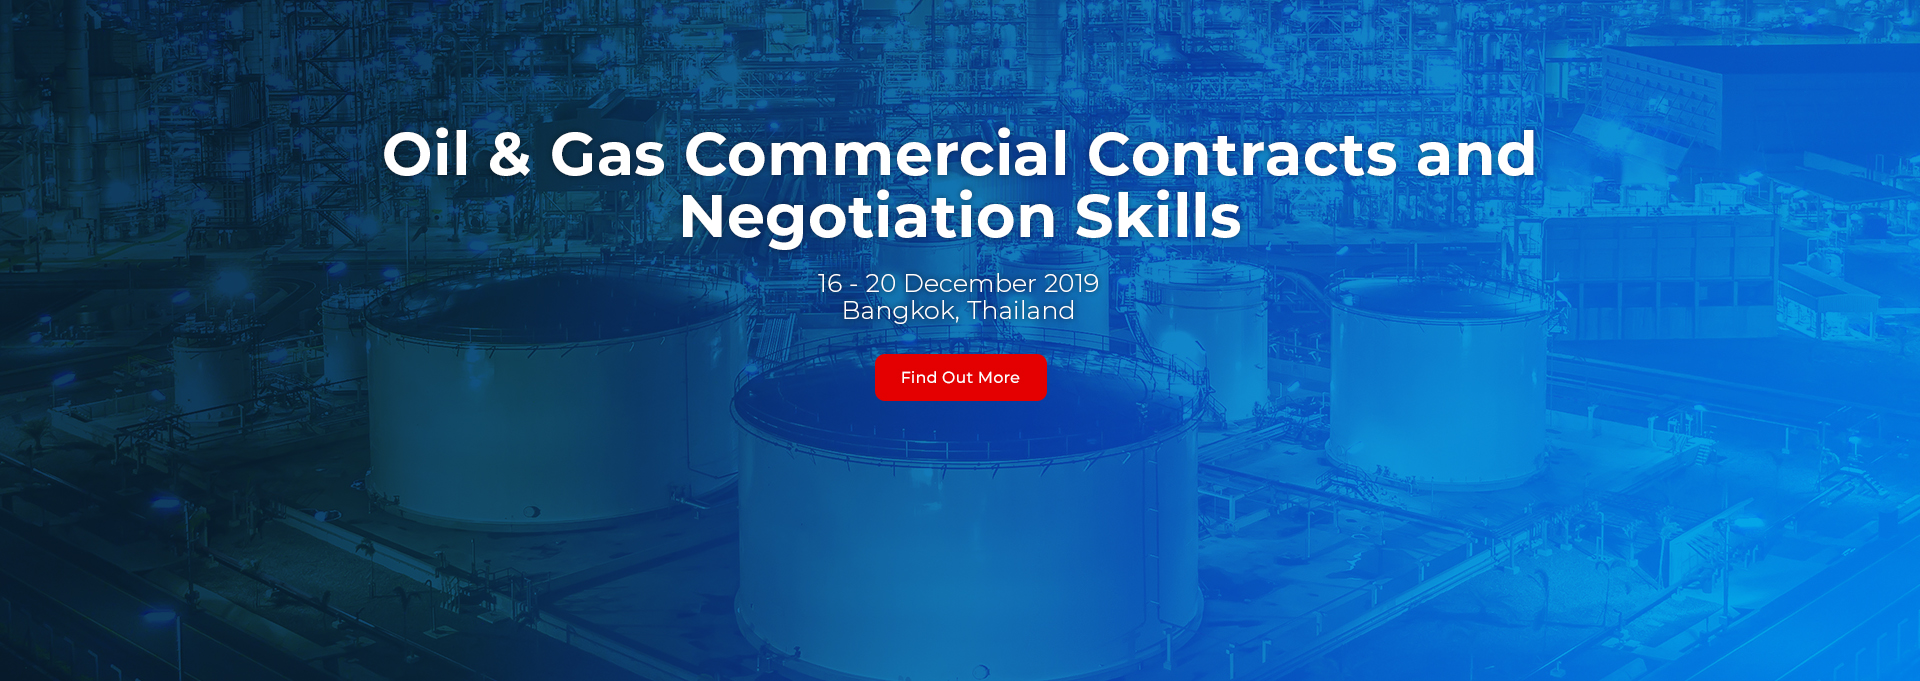 EuroMaTech Oil & Gas Commercial Contracts and Negotiation Skills